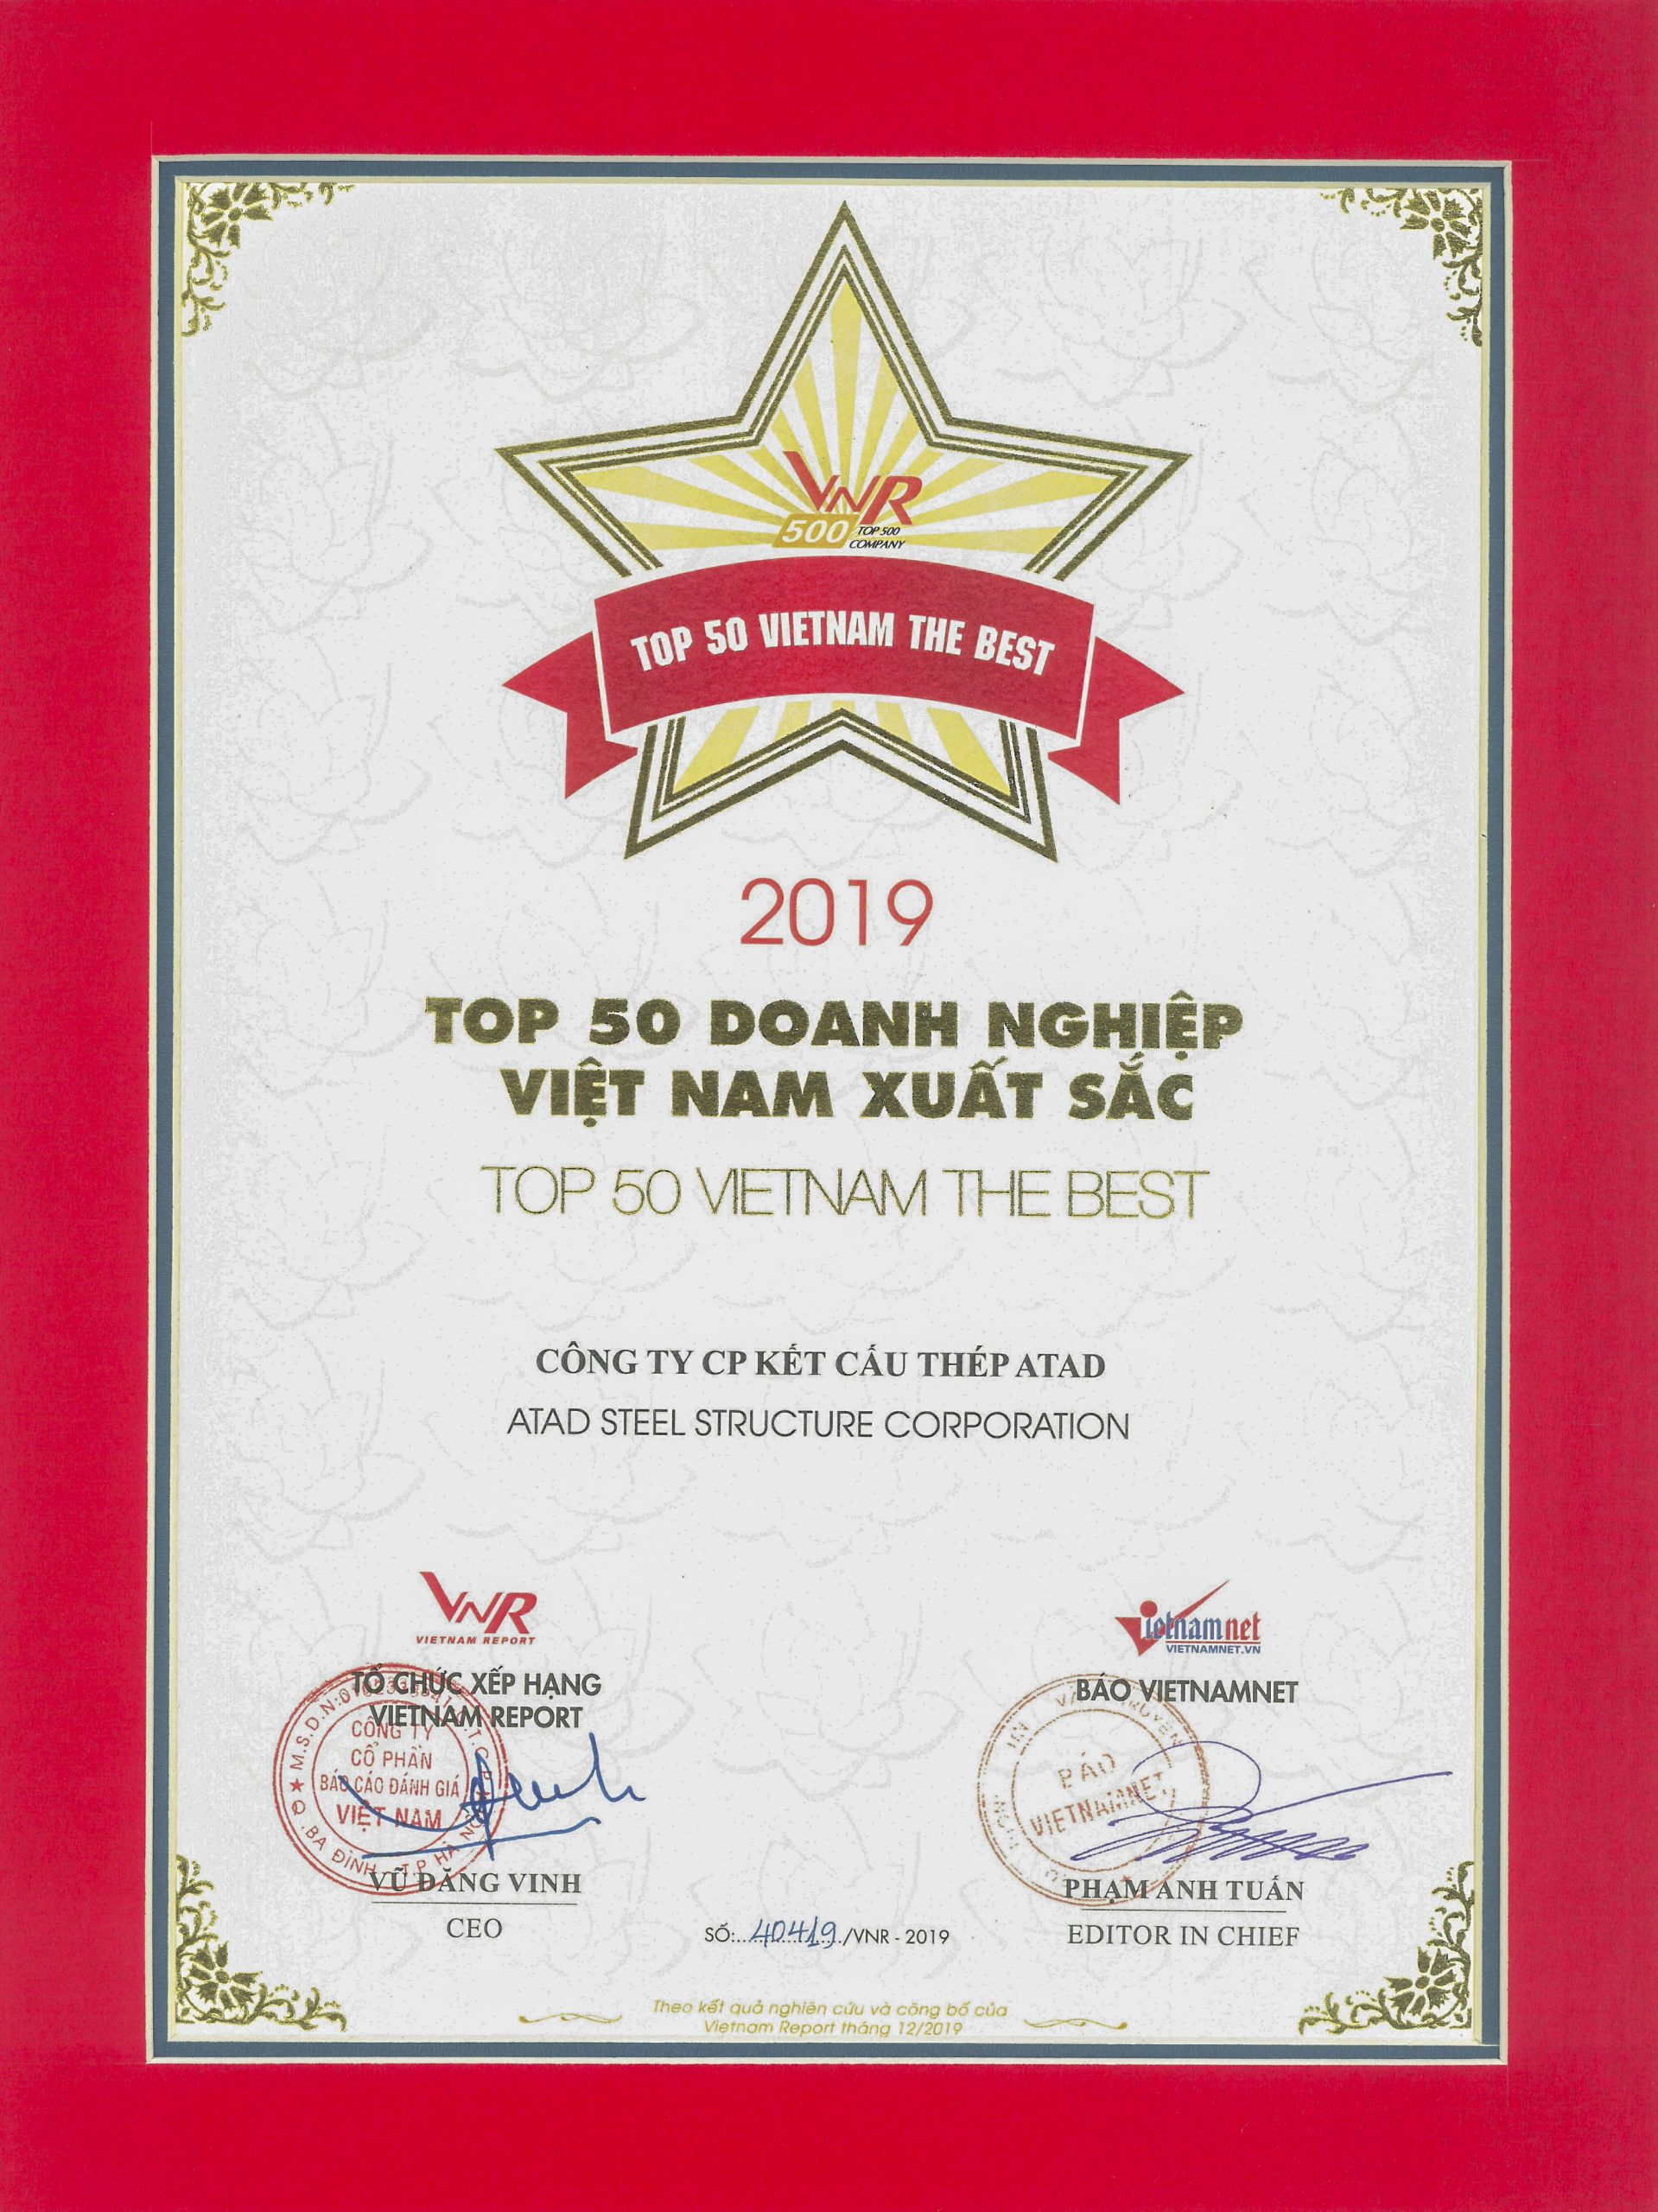 top 50 vietnam the best